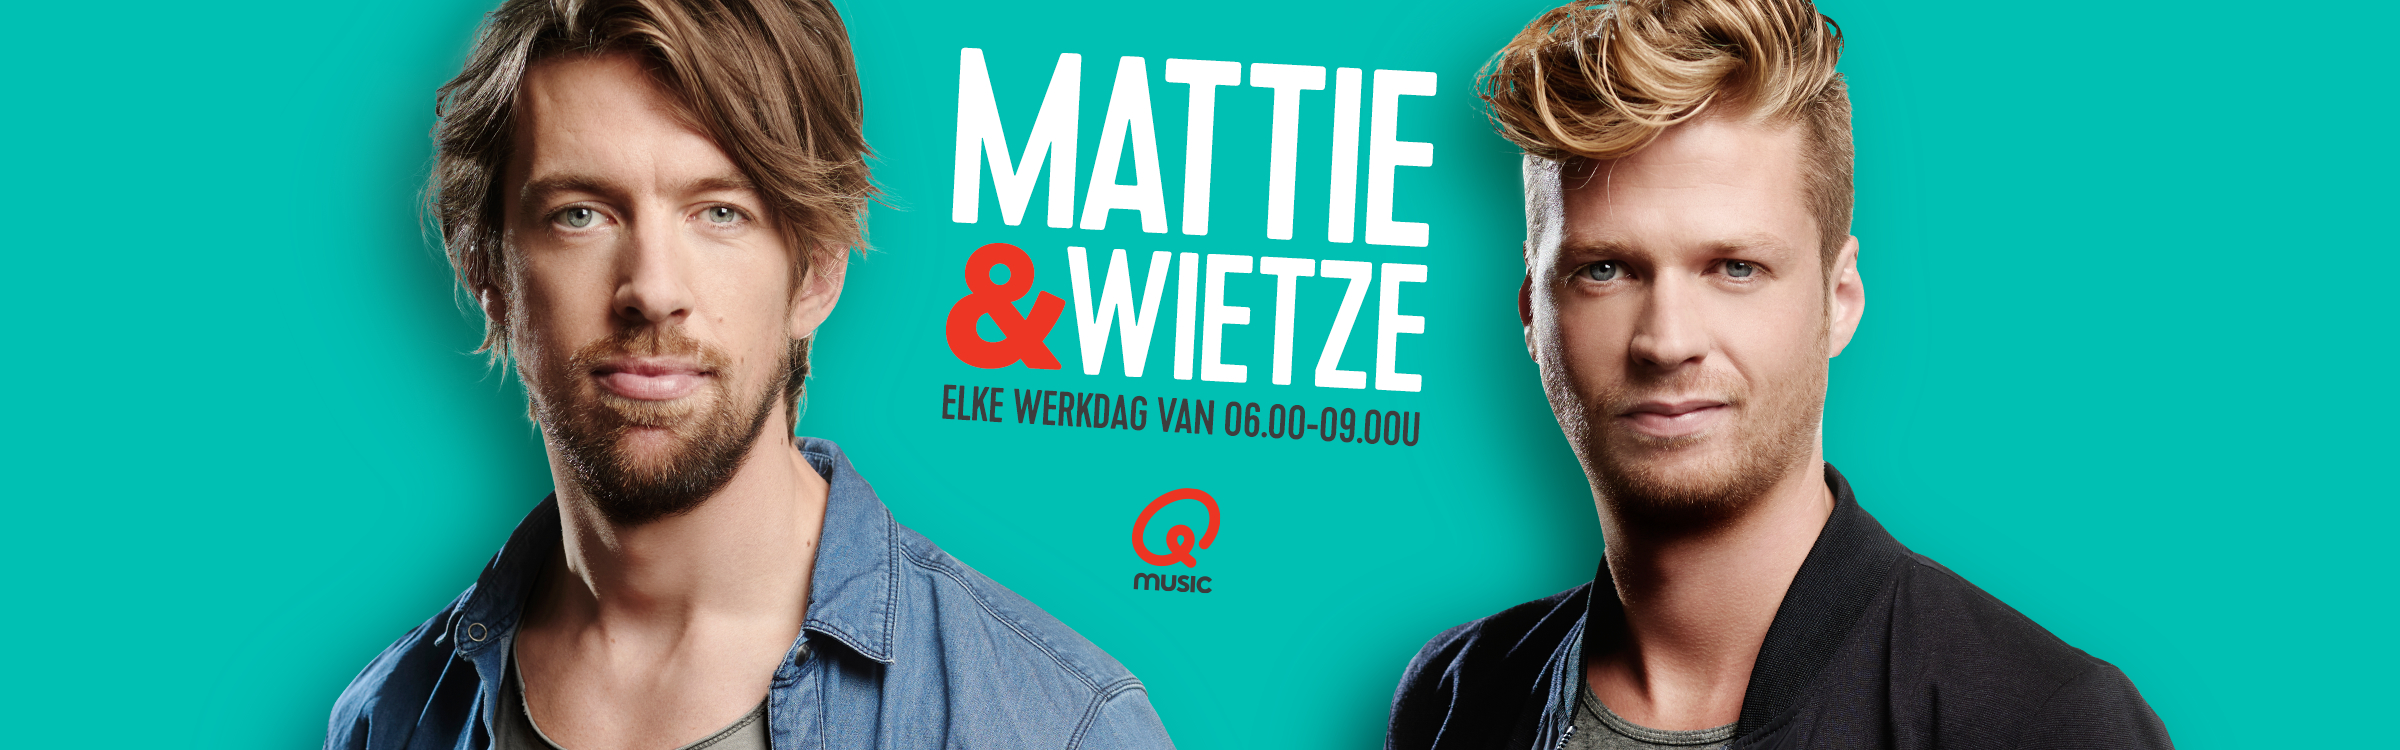 Qmusic actionheader mattiewietze